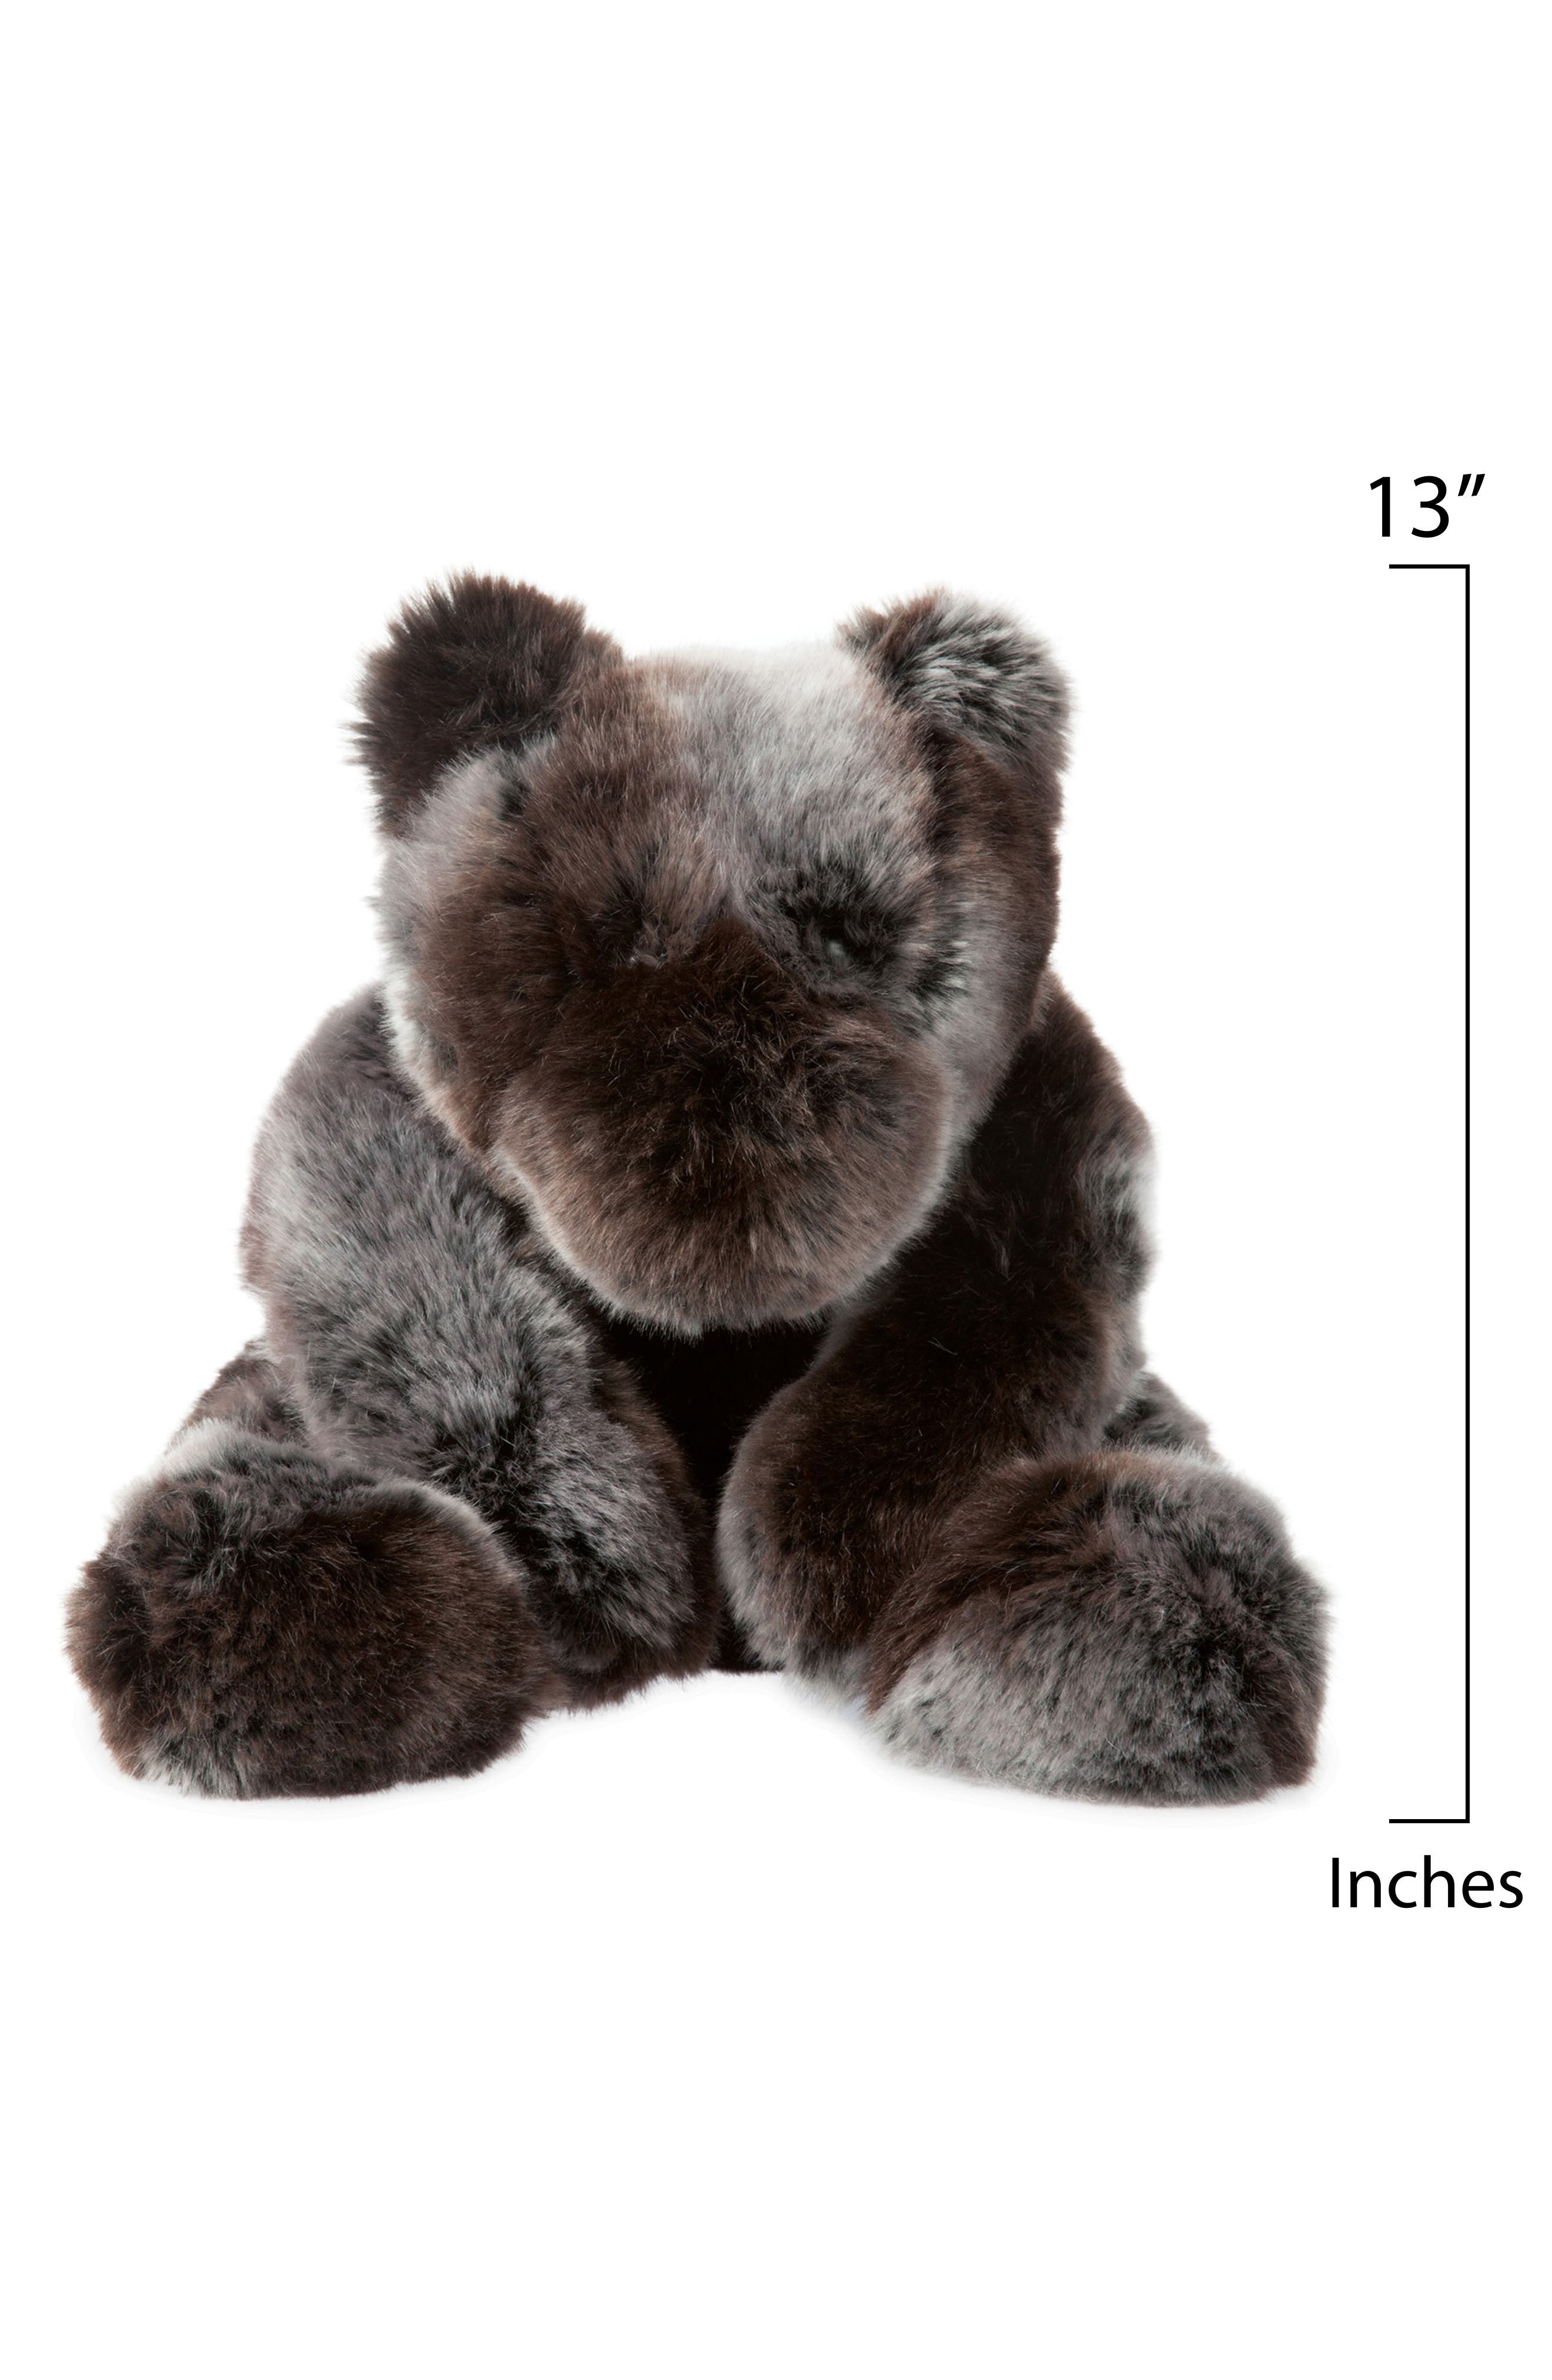 Luxe Sable Bear Stuffed Animal,                             Alternate thumbnail 2, color,                             200